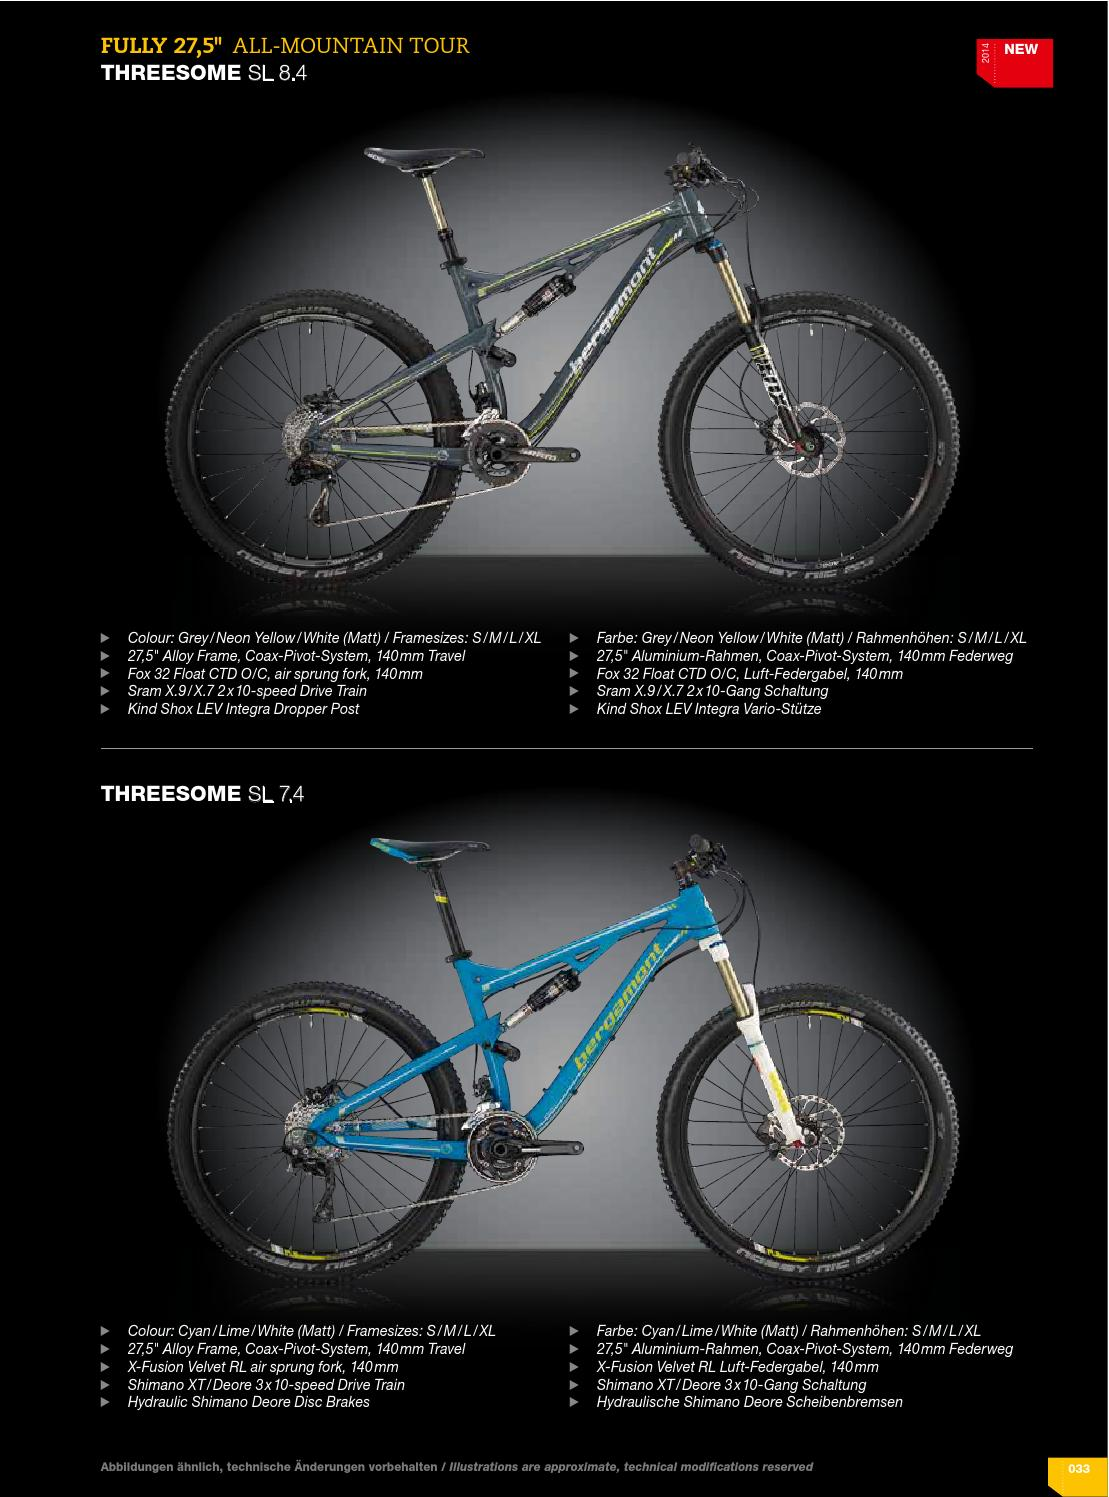 Catalogo Bergamont 2014 by BikeMTB.net - issuu